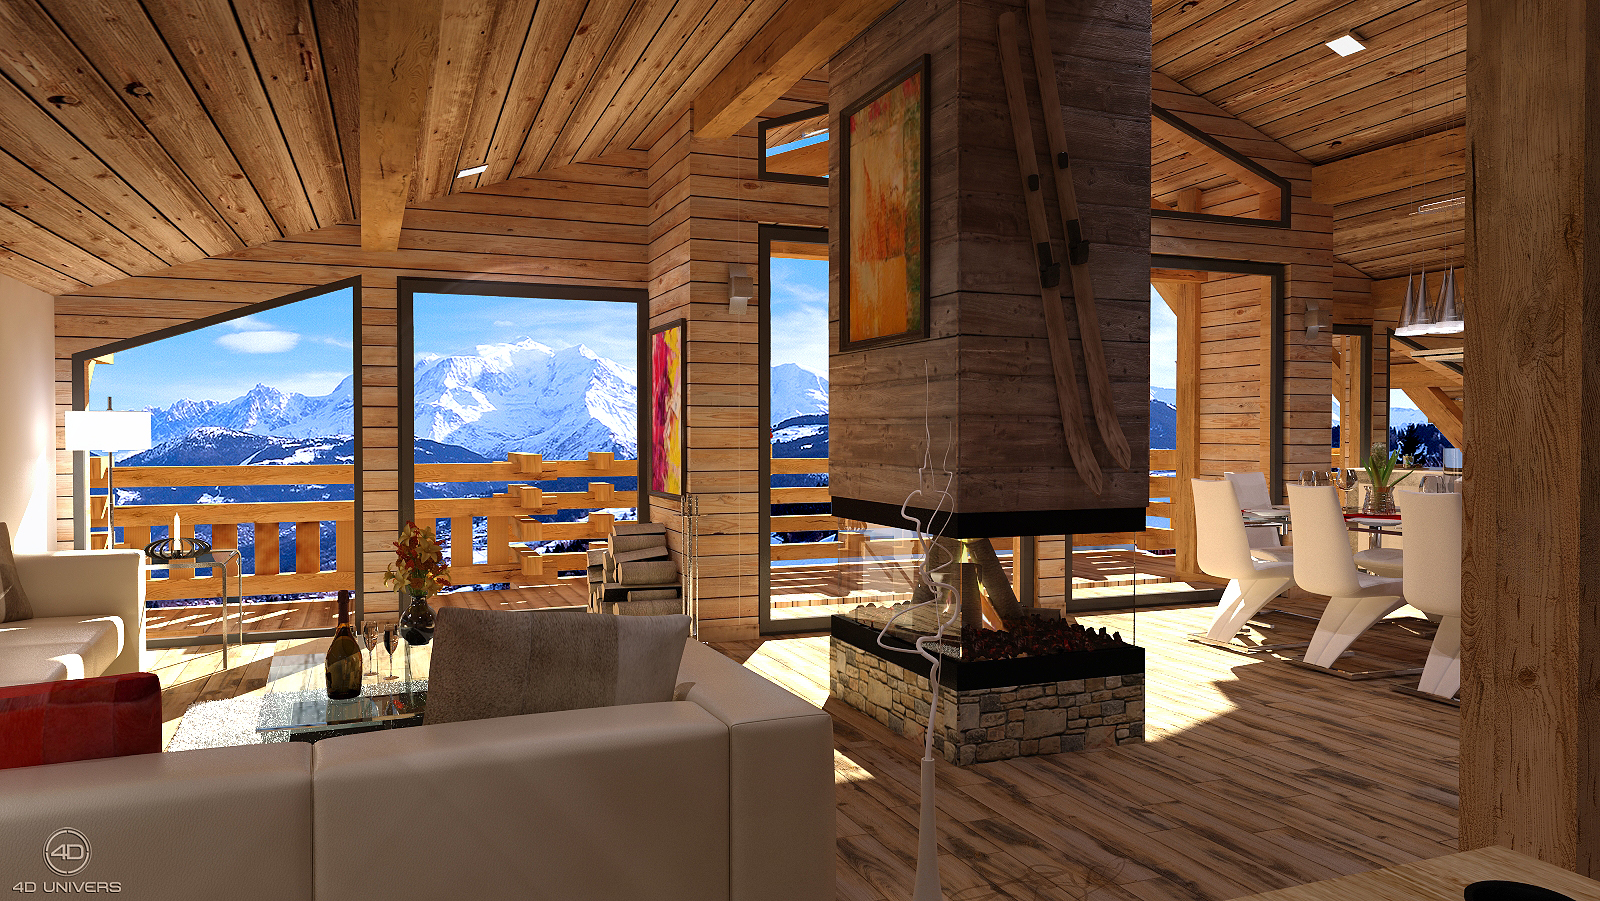 Chalet meg ve 4d univers studio animation 3d architecture 3d visites virtuelles 360 - Interieur chalet berg foto ...